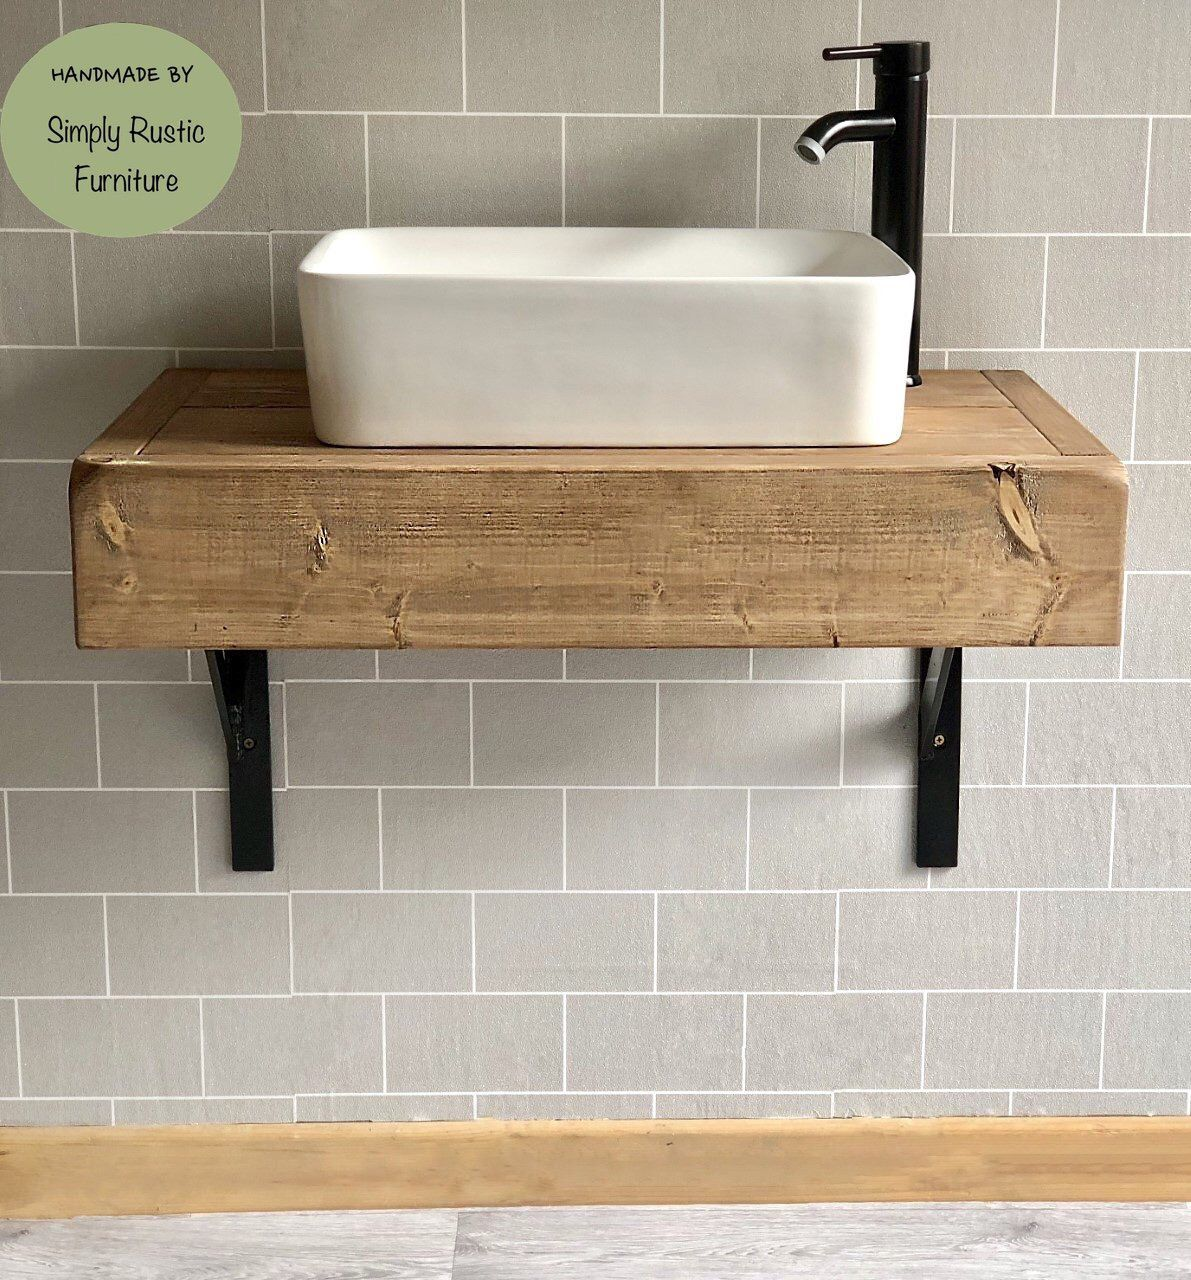 The Floating Beam Shelf Wash Stand Sink Unit Hand Crafted Rustic Bathroom Vanity Unit Wooden Vanity Industrial With Brackets Shelving Floating Bathroom Vanities Industrial Bathroom Decor Bathroom Sink Units